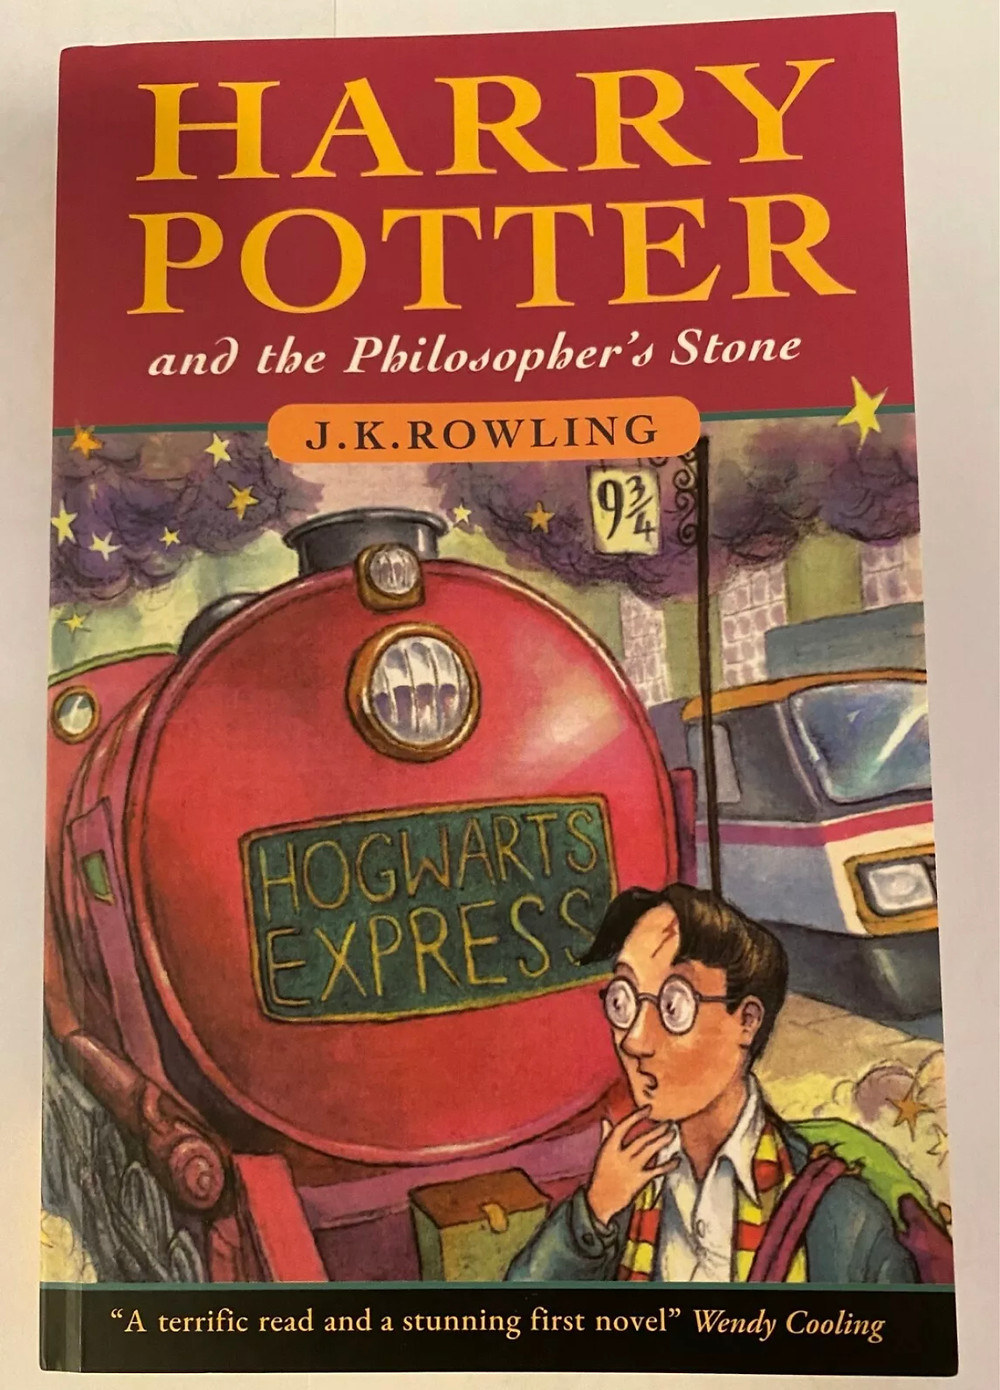 This book looks to an entirely FAKE copy of Harry Potter and the Philosopher's Stone, offered up for sale on eBay 10/2020